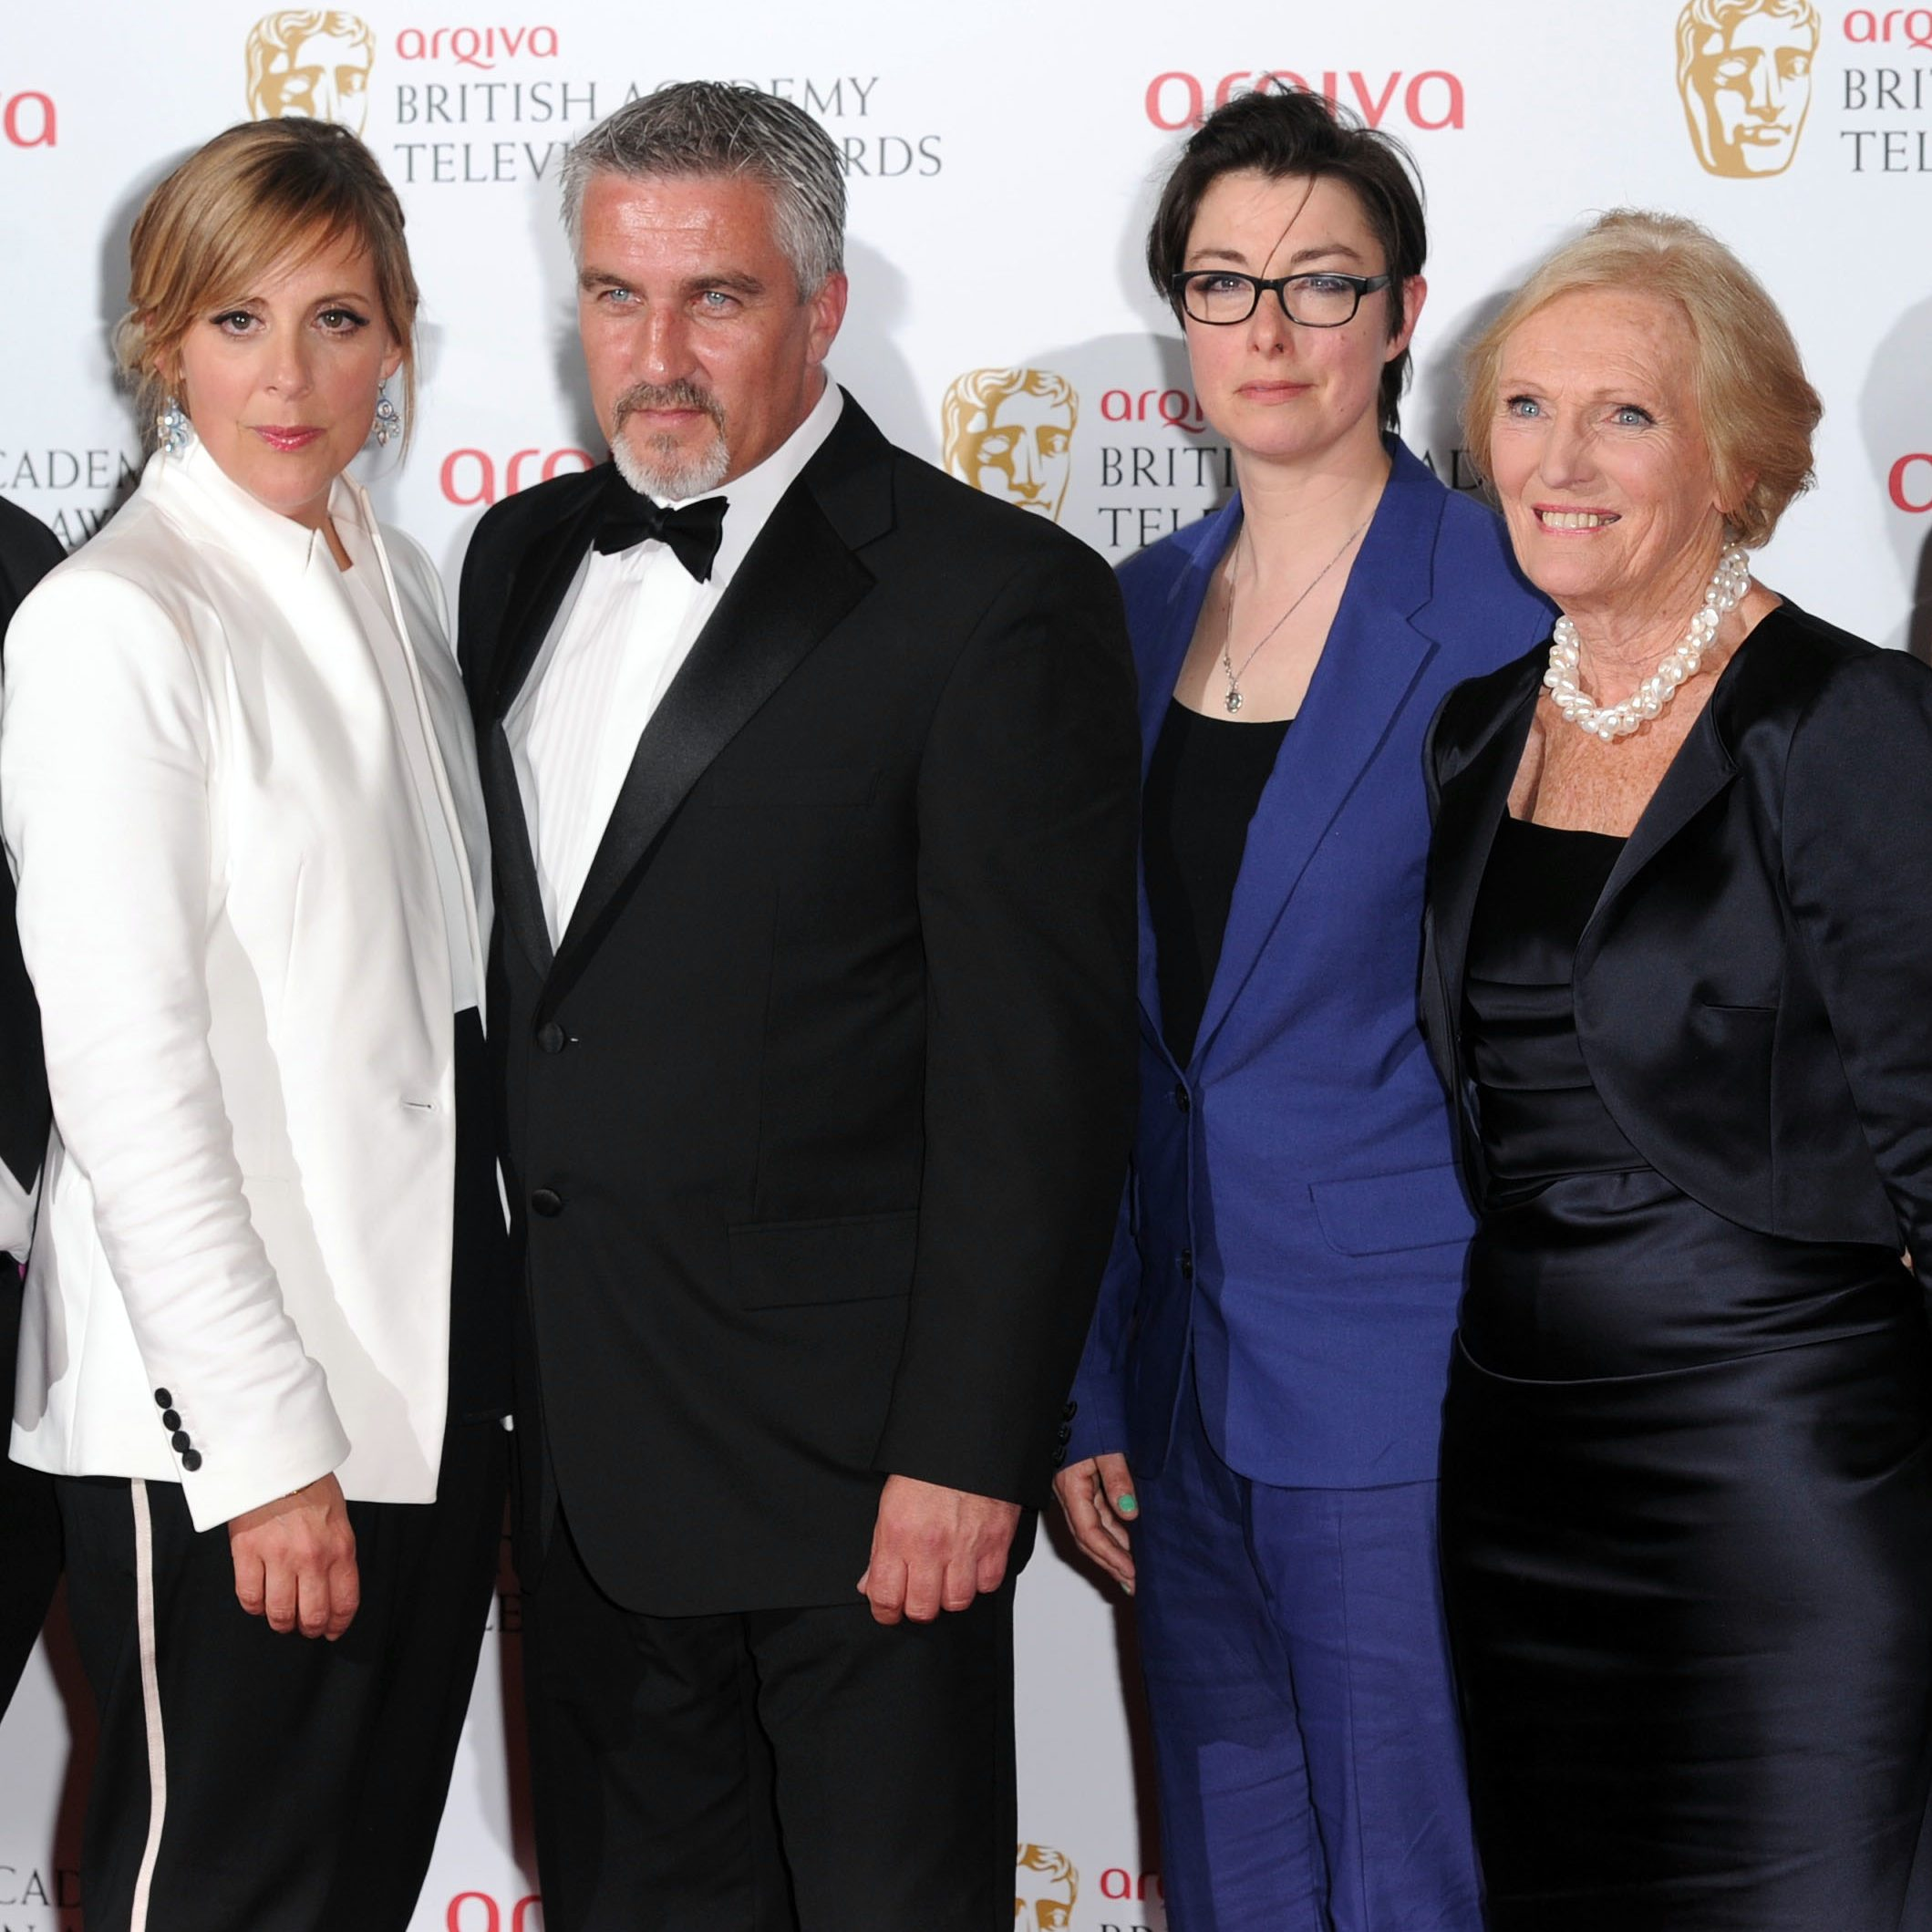 Mandatory Credit: Photo by David Fisher/Shutterstock (2334646gk) Best Features award for 'The Great British Bake Off' winners - Kieran Smith, Mel Giedroyc, Paul Hollywood, Sue Perkins, Mary Berry, Anna Beattie, Amanda Westwood Arqiva British Academy Television Awards, press room, Royal Festival Hall, London, Britain - 12 May 2013